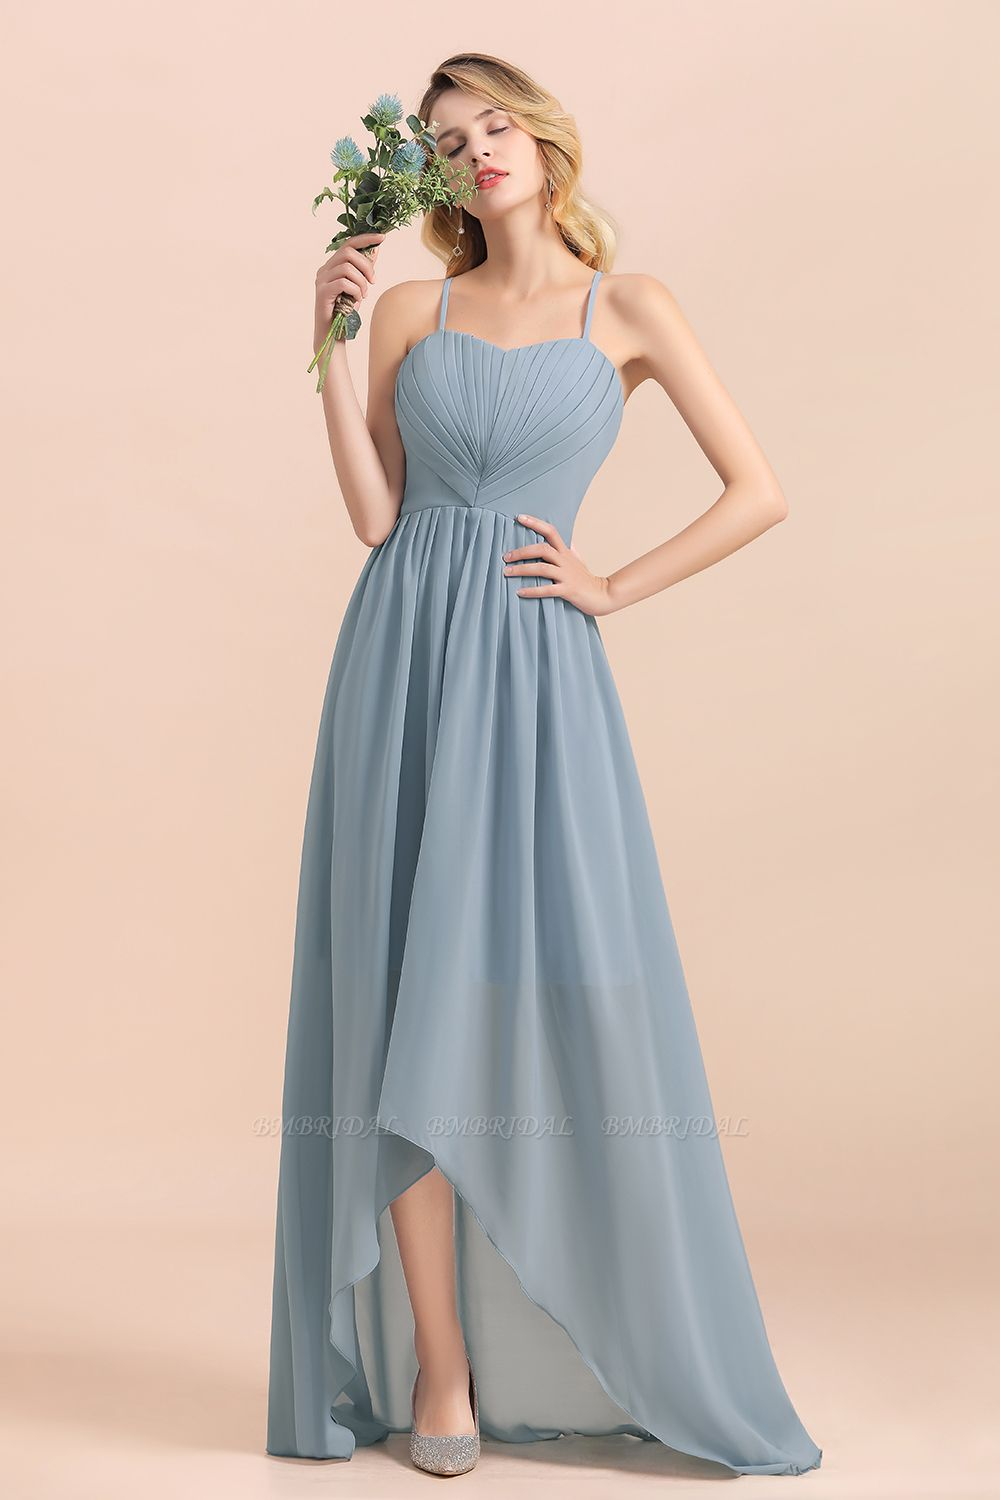 Gorgeous Hi-Lo Heart-Shaped Ruffle Bridesmaid Dress with Spaghetti Straps